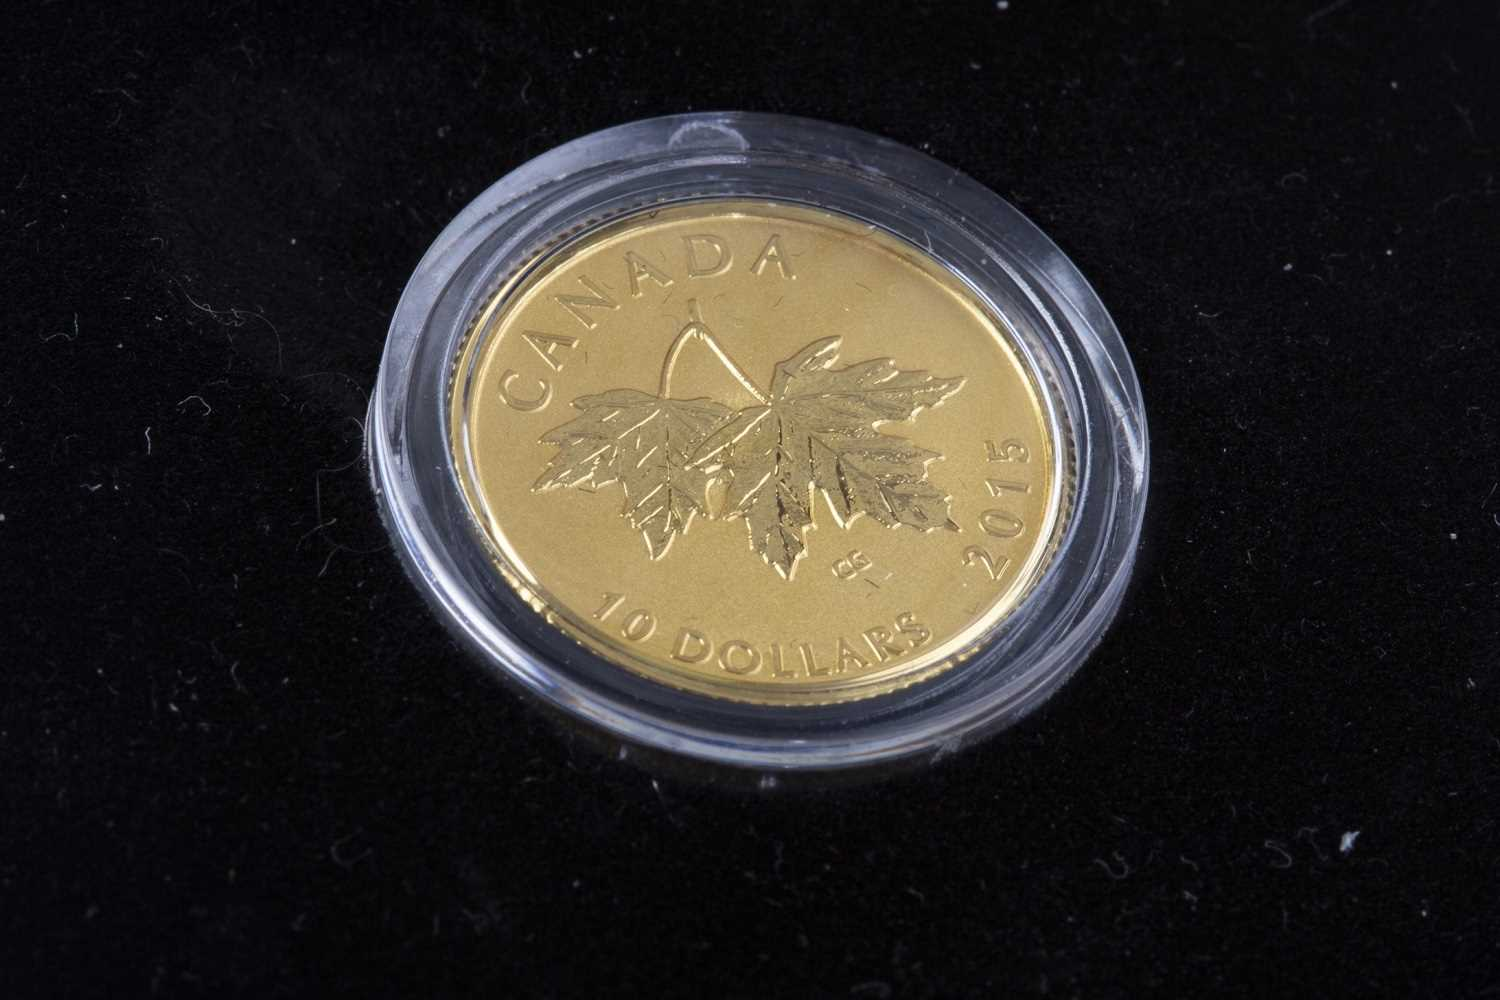 Lot 536 - A THE ROYAL CANADIAN MINT 2015 $10 GOLD COIN